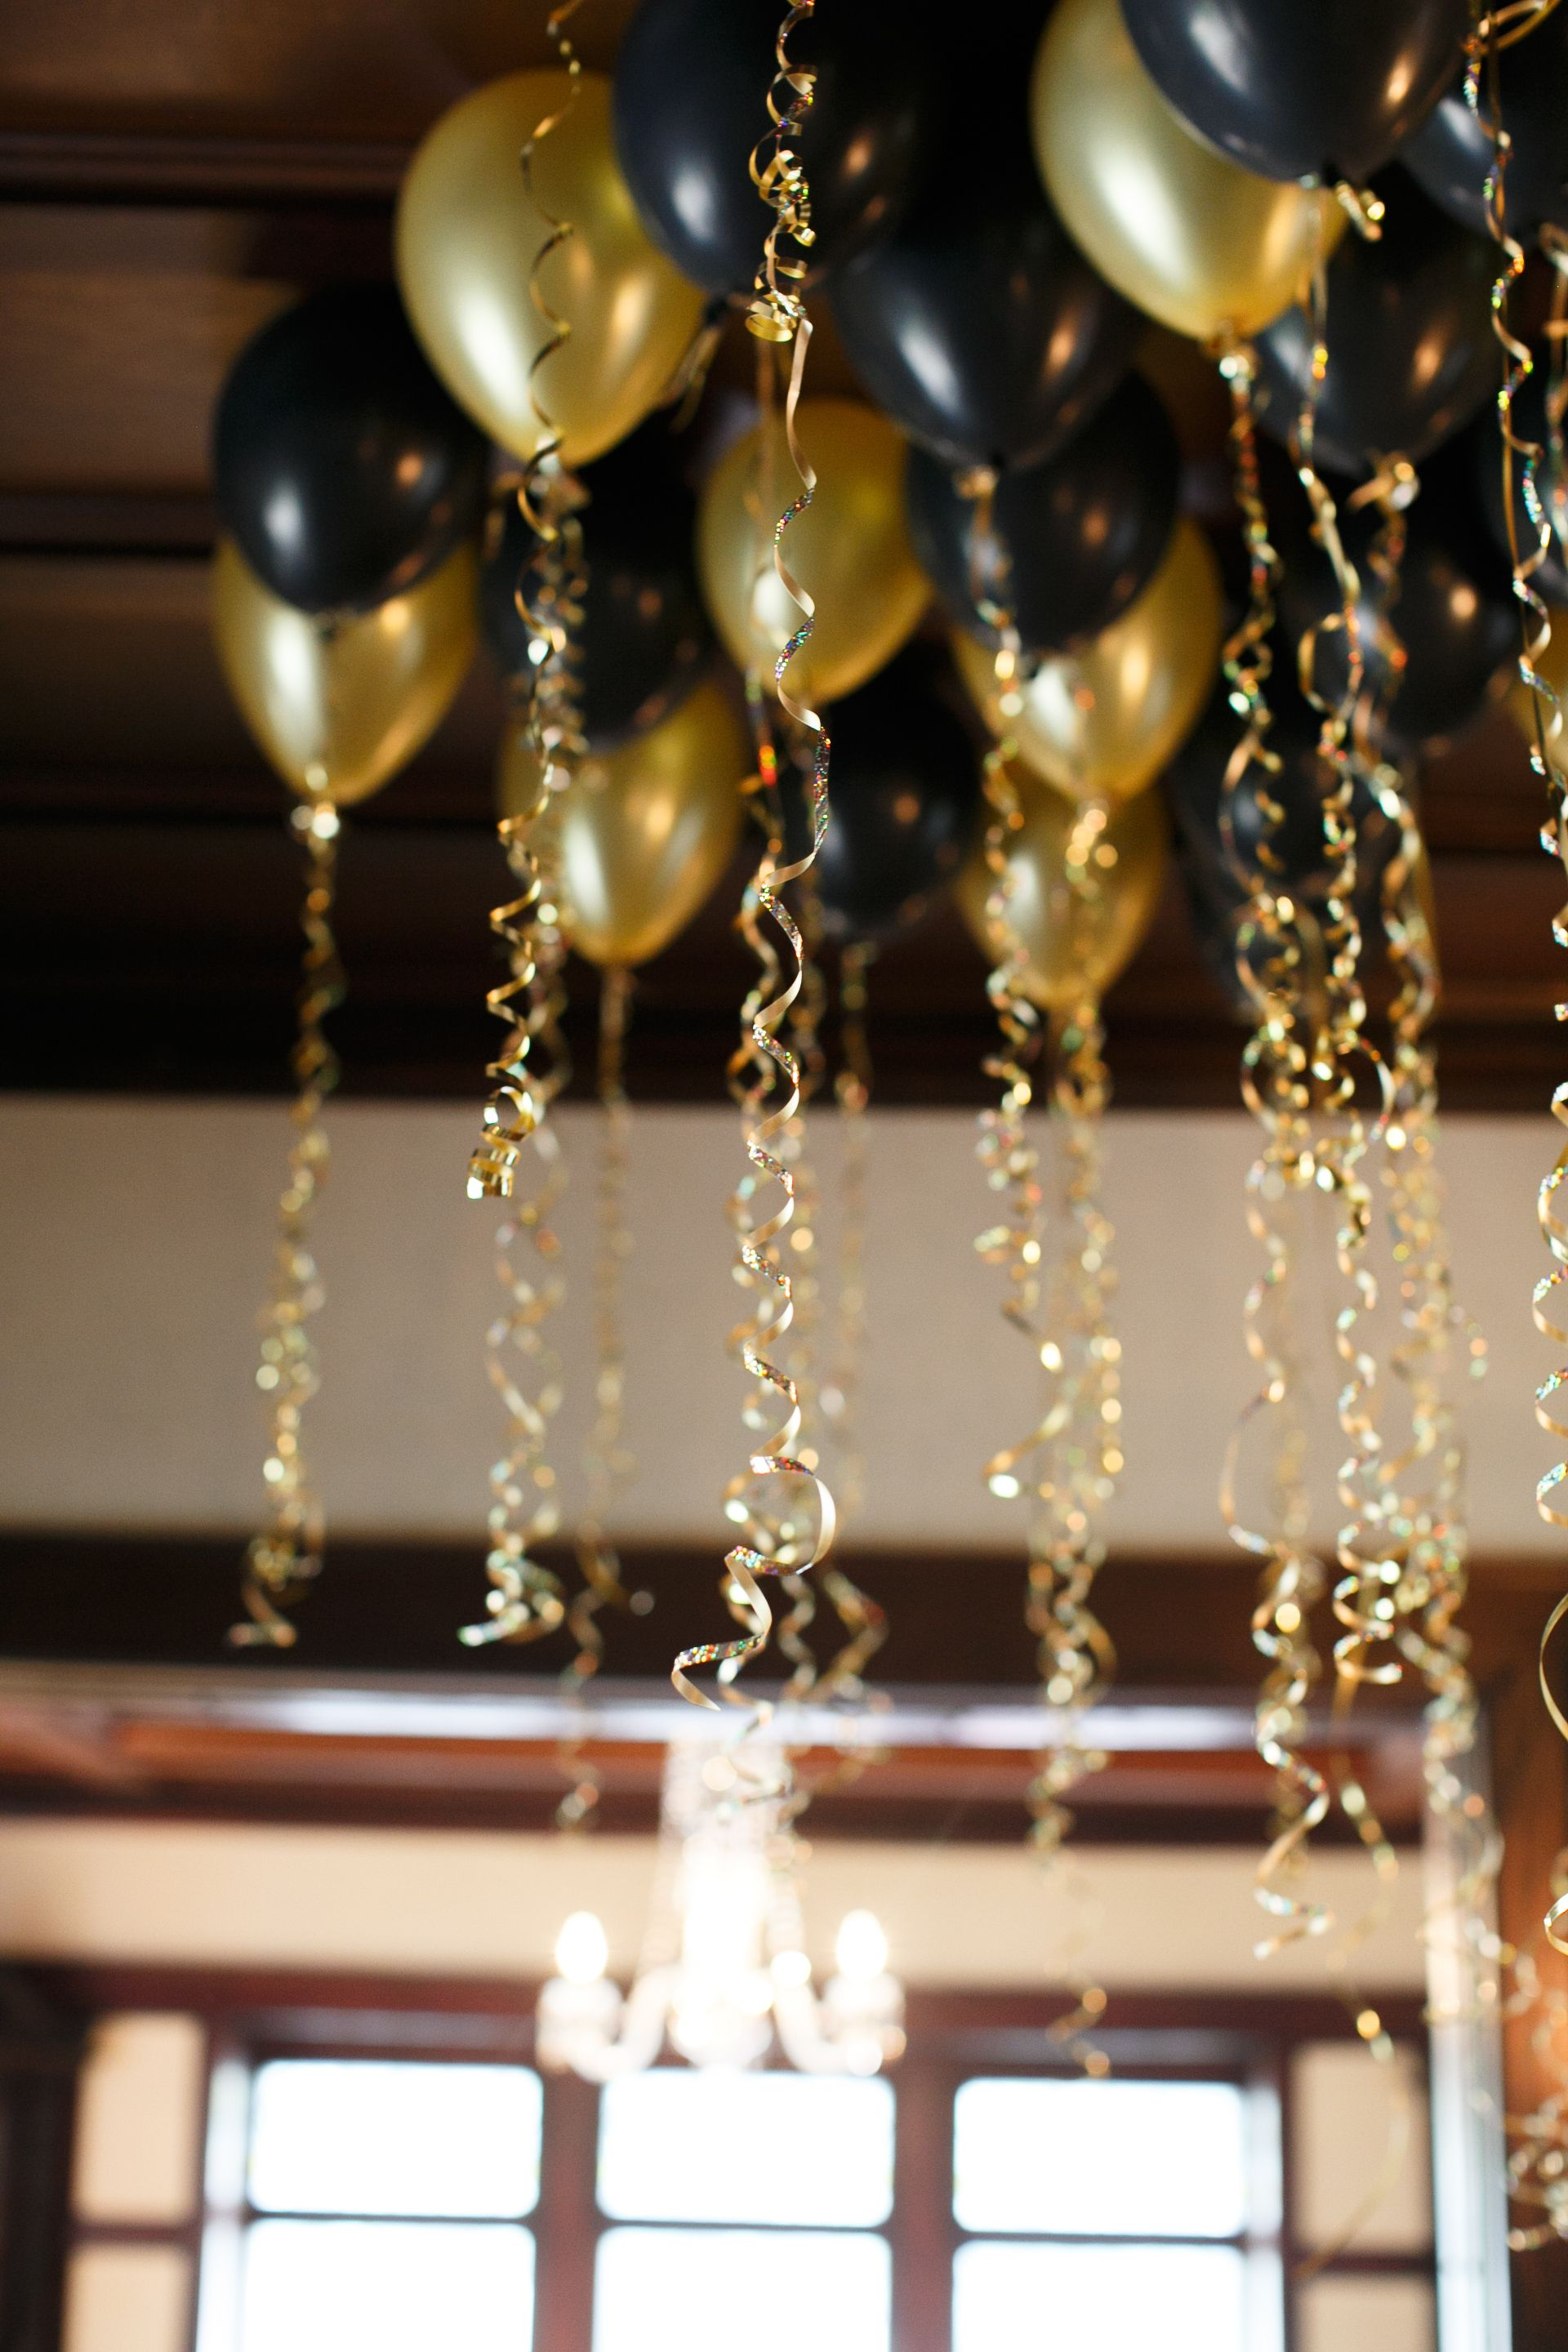 Gatsby Party Decor Black And Gold Balloons Theme Metallic